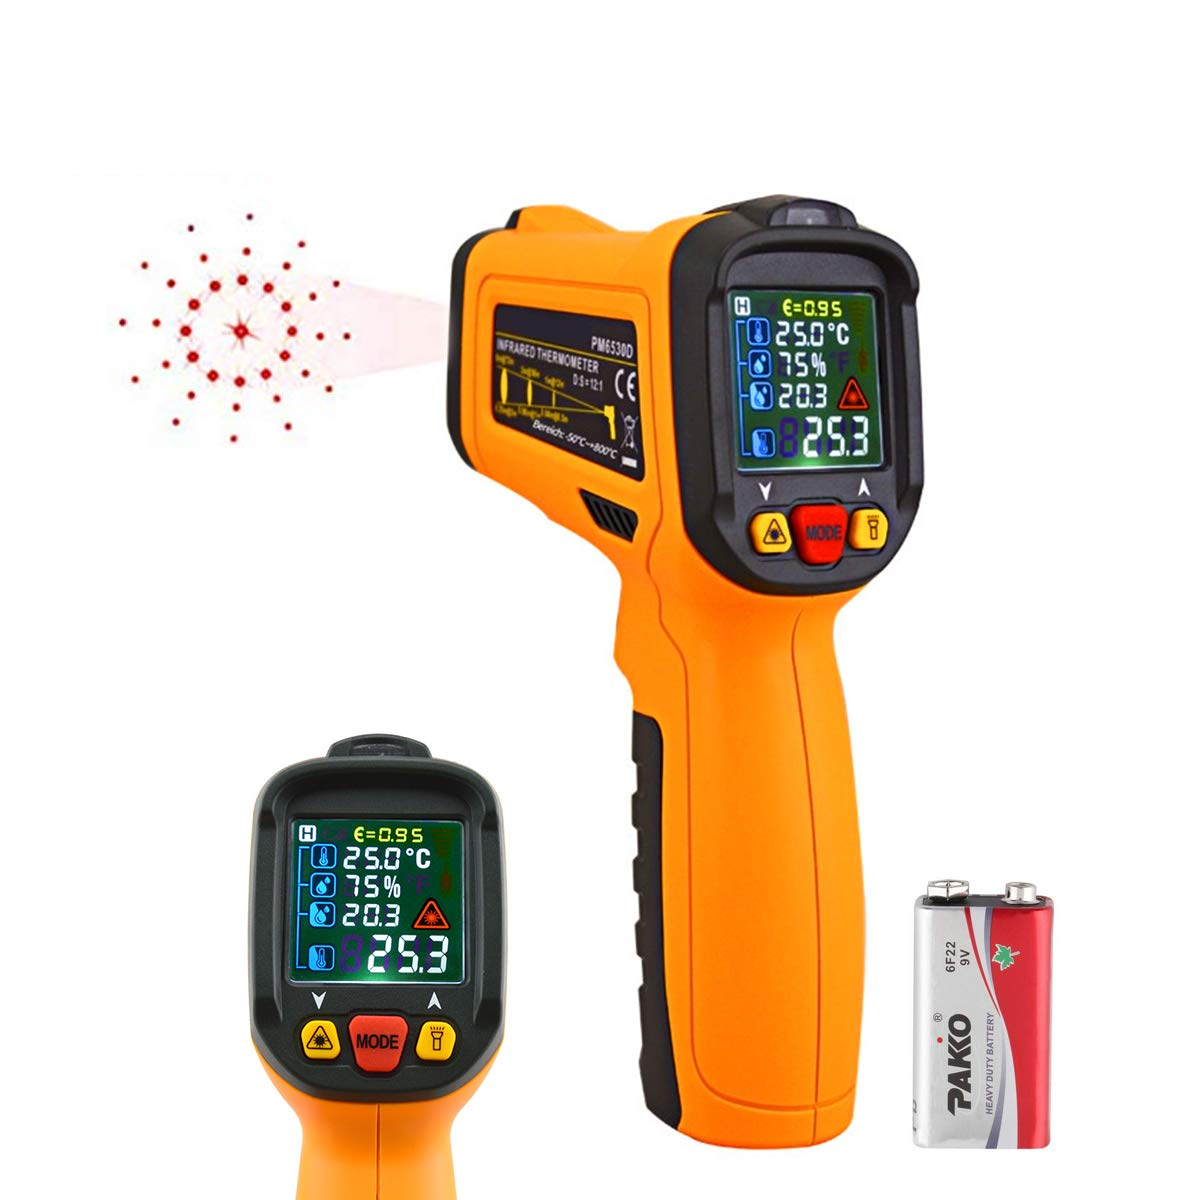 Laser Infrared Thermometer,HANMATEK Non Contact Temperature Gun Instant-Read -58 ℉to 1472℉with LED Display K-Type Thermocouple for Kitchen Cooking BBQ Automotive and Industrial PM6530D Thermometer by HANMATEK